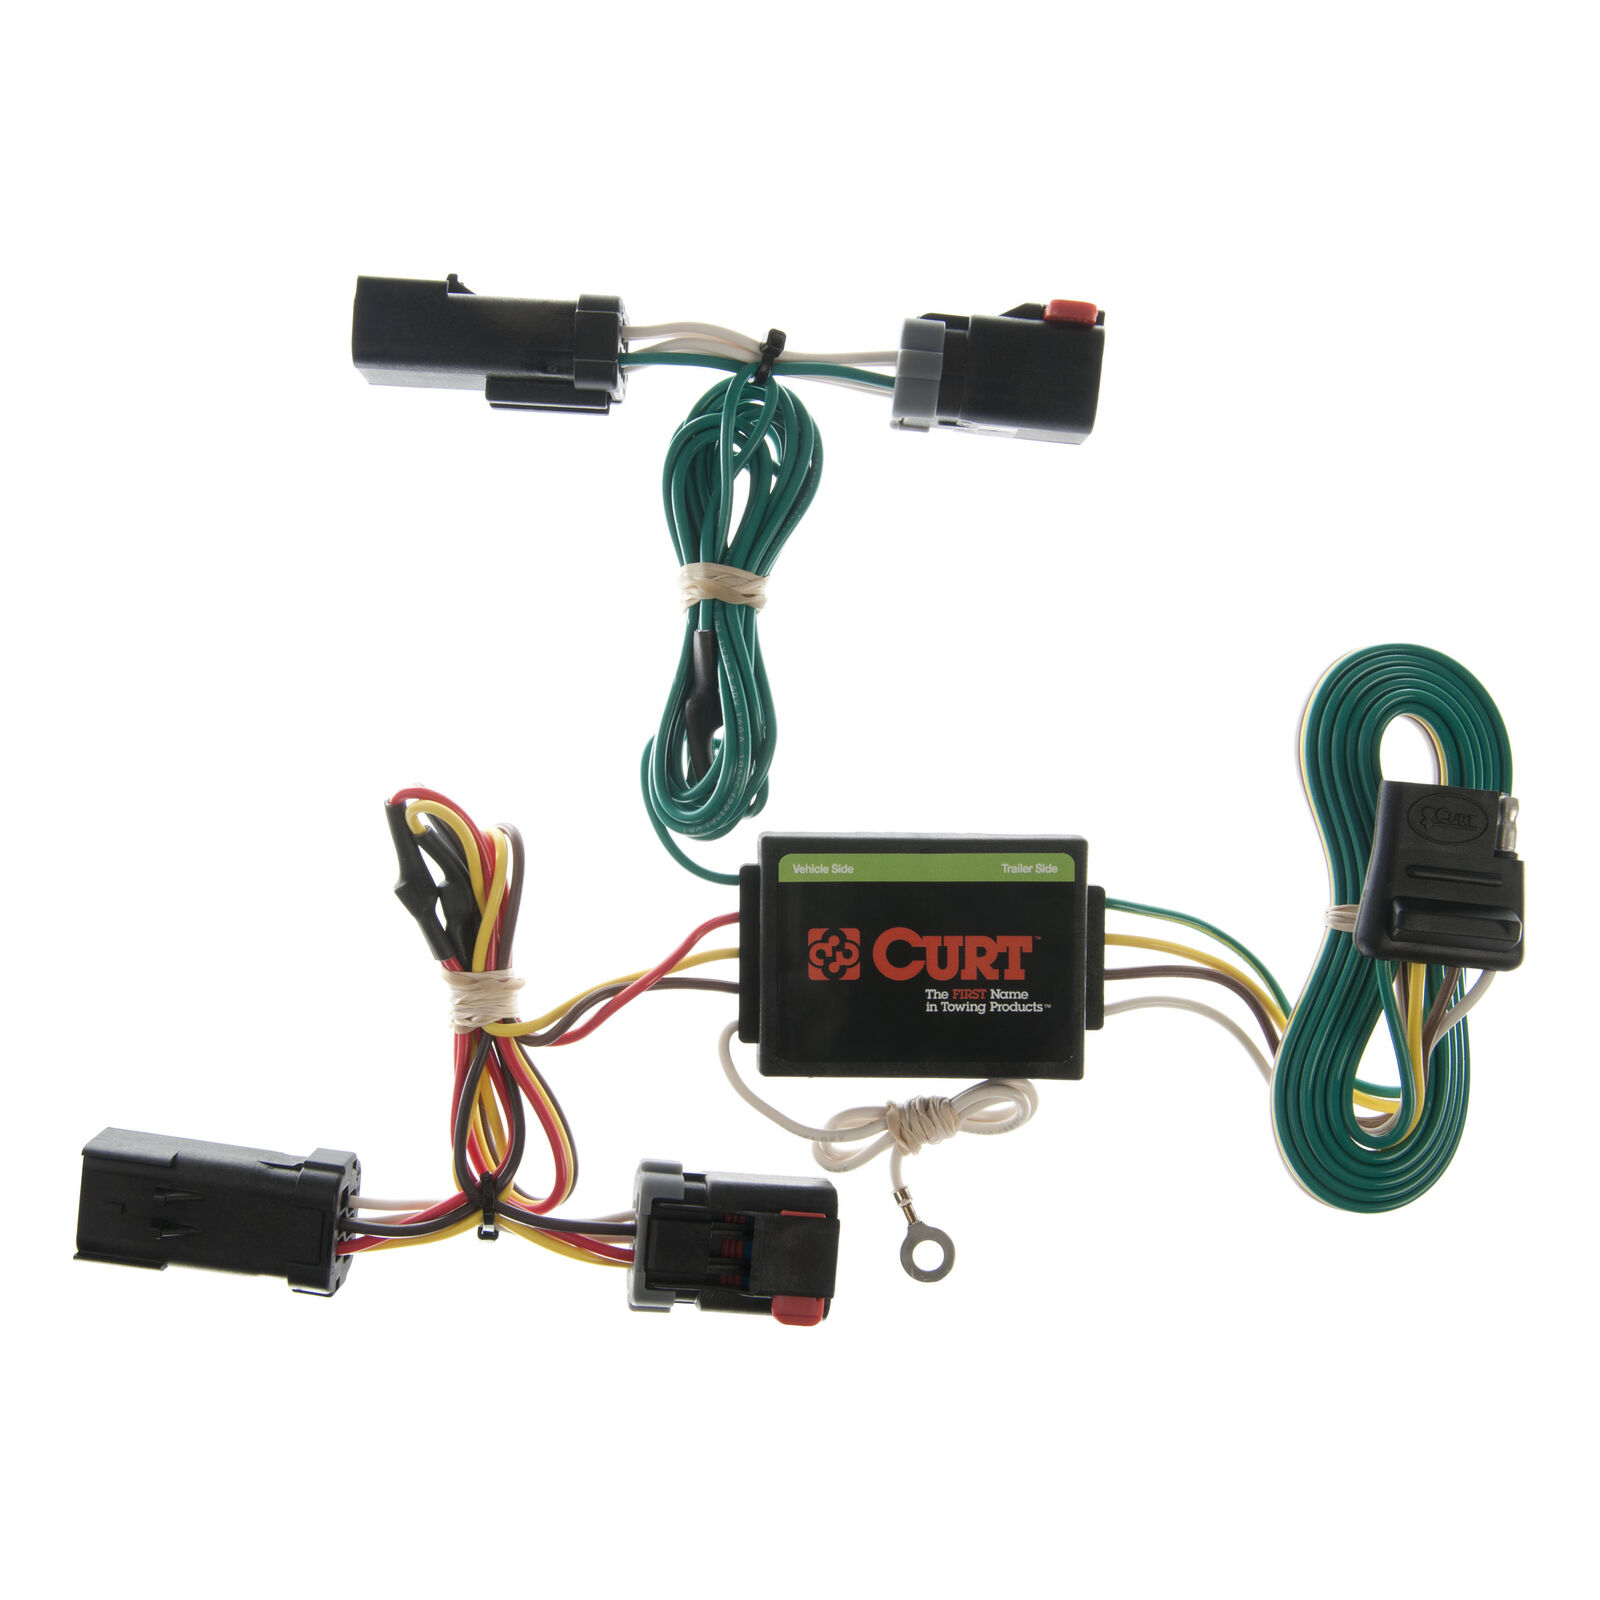 CURT Custom Vehicle-to-Trailer Wiring Harness 55382 for 2002-2007 Jeep  Liberty 1 of 2FREE Shipping See More